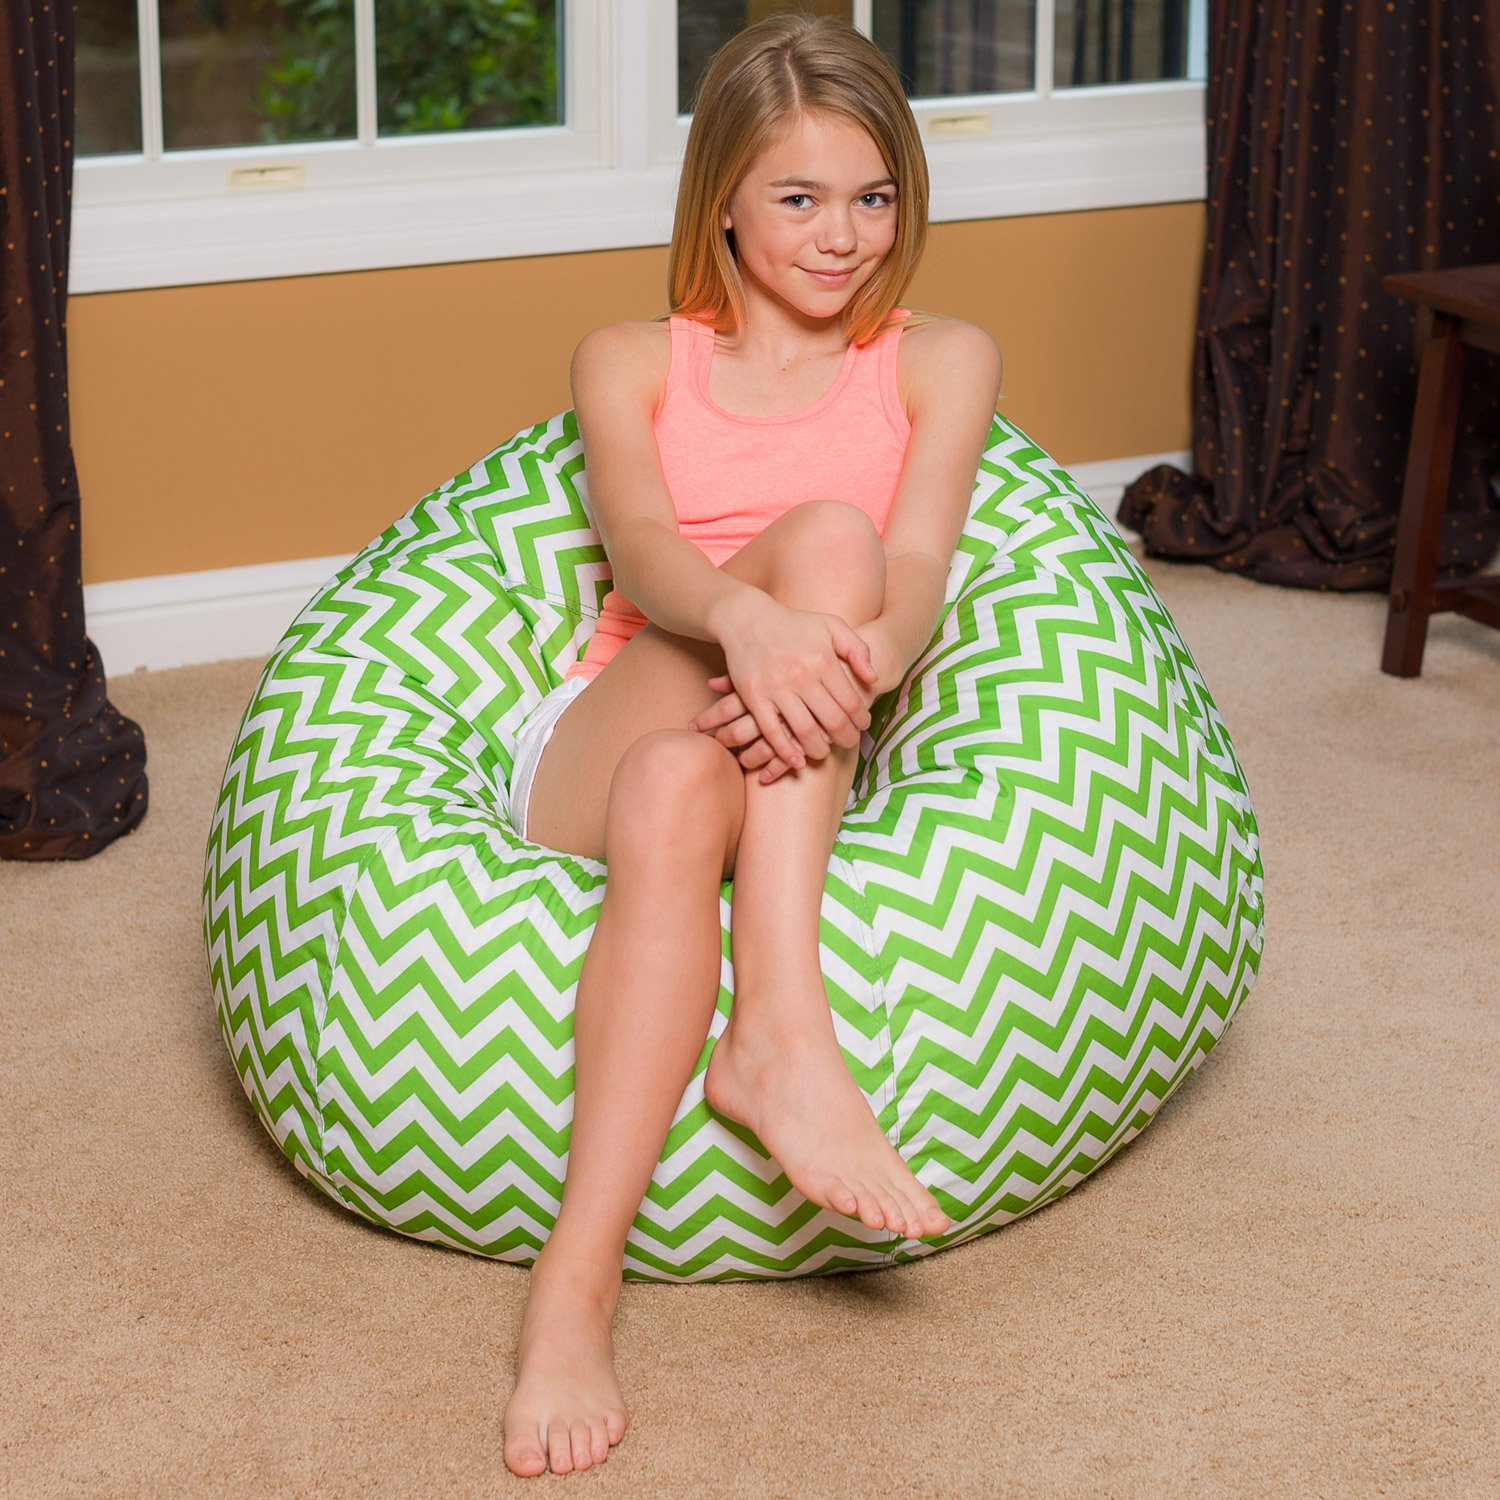 Big Comfy Bean Bag Chair: Posh Large Beanbag Chairs for Kids, Teens and Adults - Polyester Cloth Puff Sack Lounger Furniture for All Ages - 27 Inch - Chevron Green and White by Posh Beanbags (Image #6)